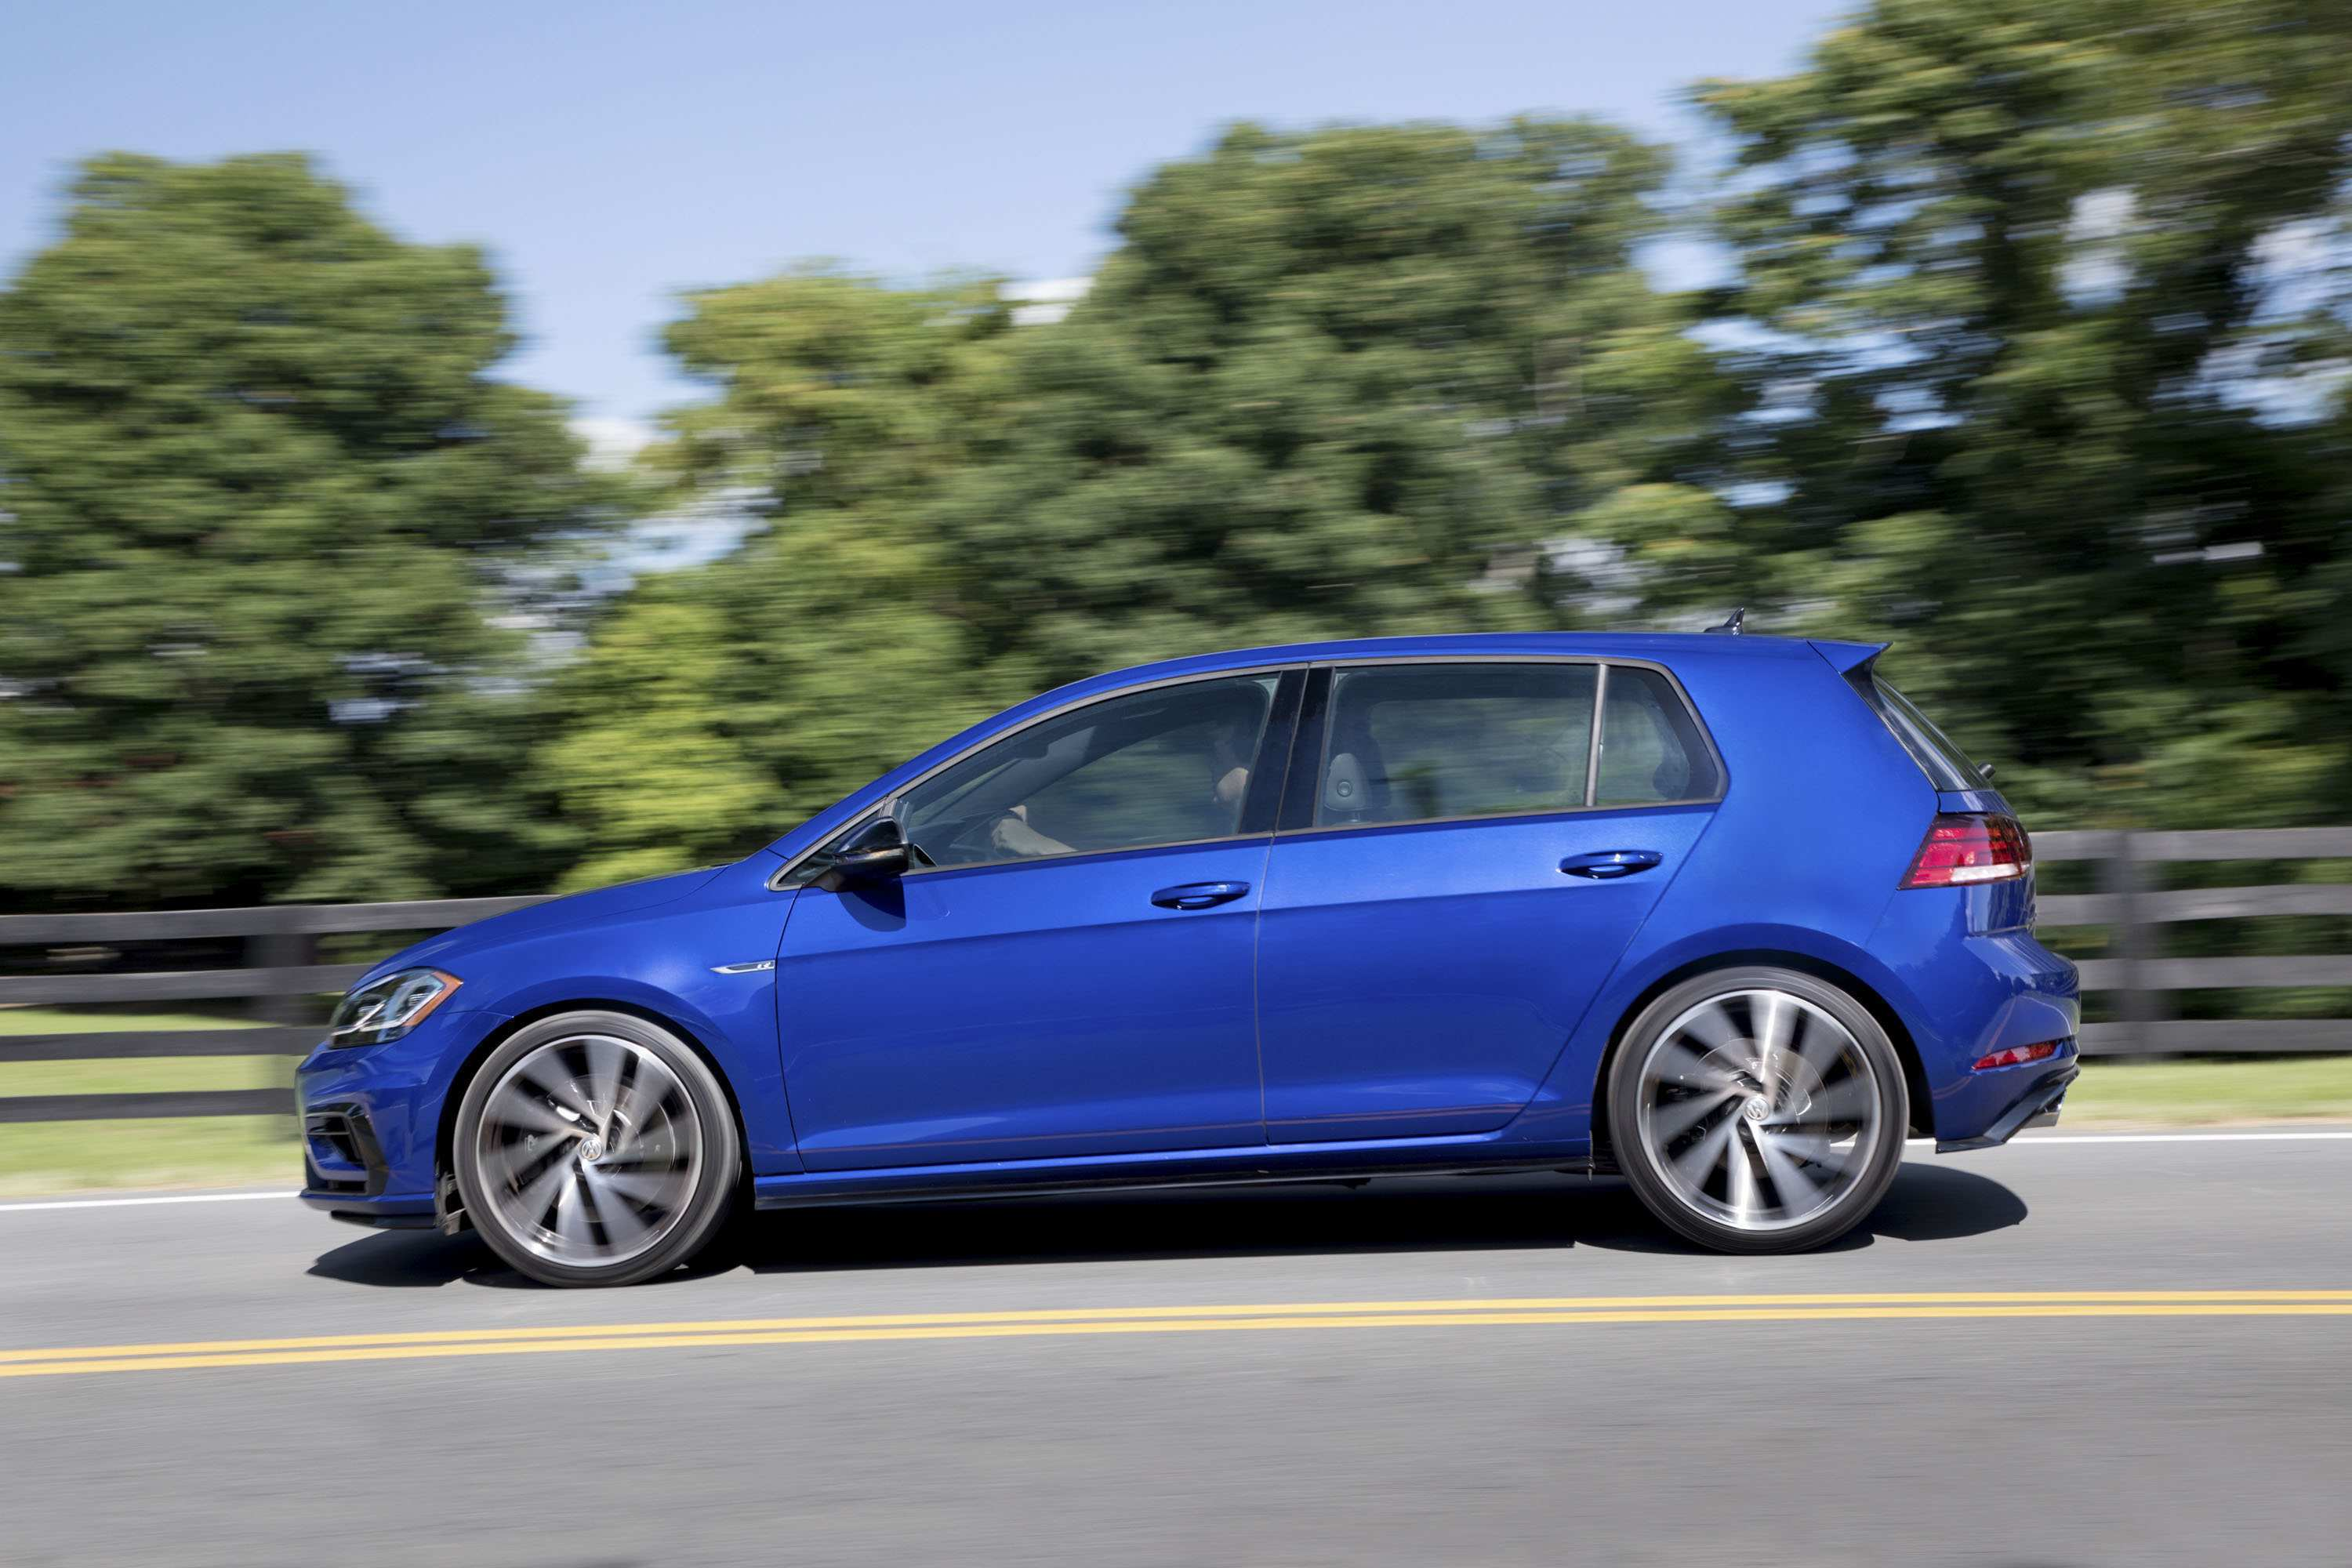 91 The Best 2020 Volkswagen Golf R Exterior